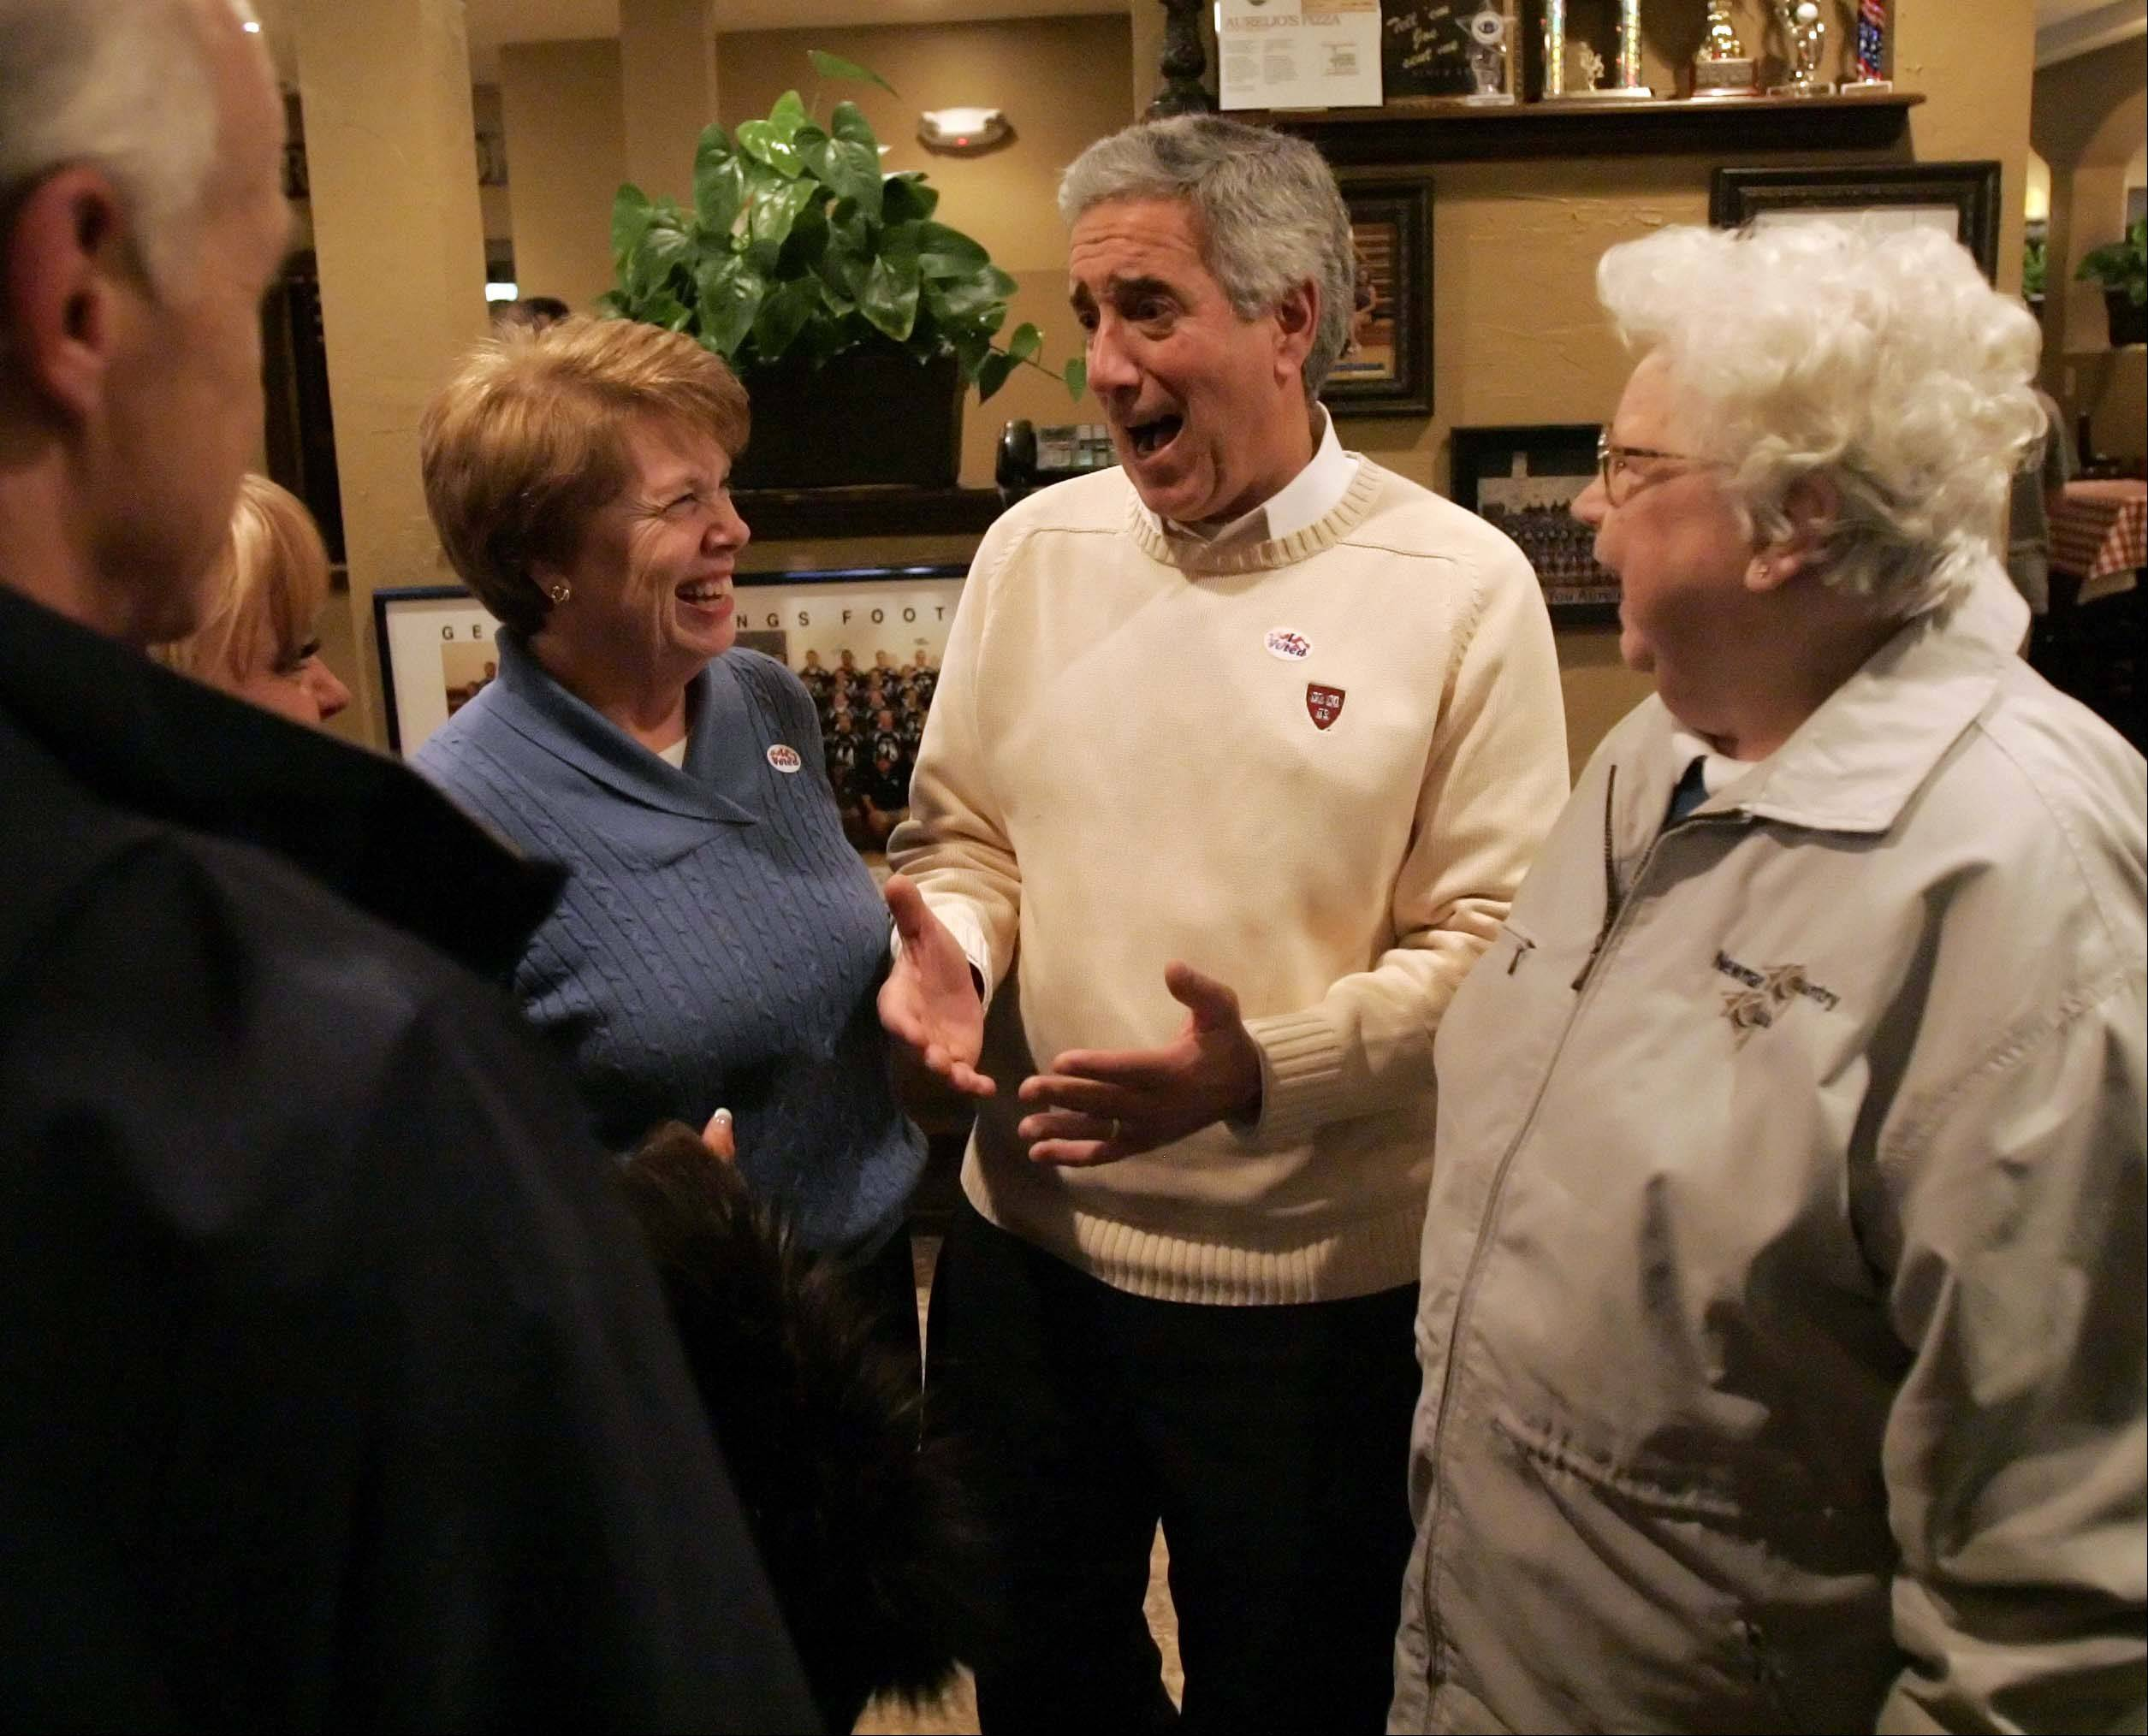 Chris Lauzen talks with his wife Sarah, left, and other supporters, including Donna Neely, right, of Elburn as he gets the good news Tuesday that he will be the new Kane County Board chairman. Lauzen defeated Sue Klinkhamer, according to unofficial results.